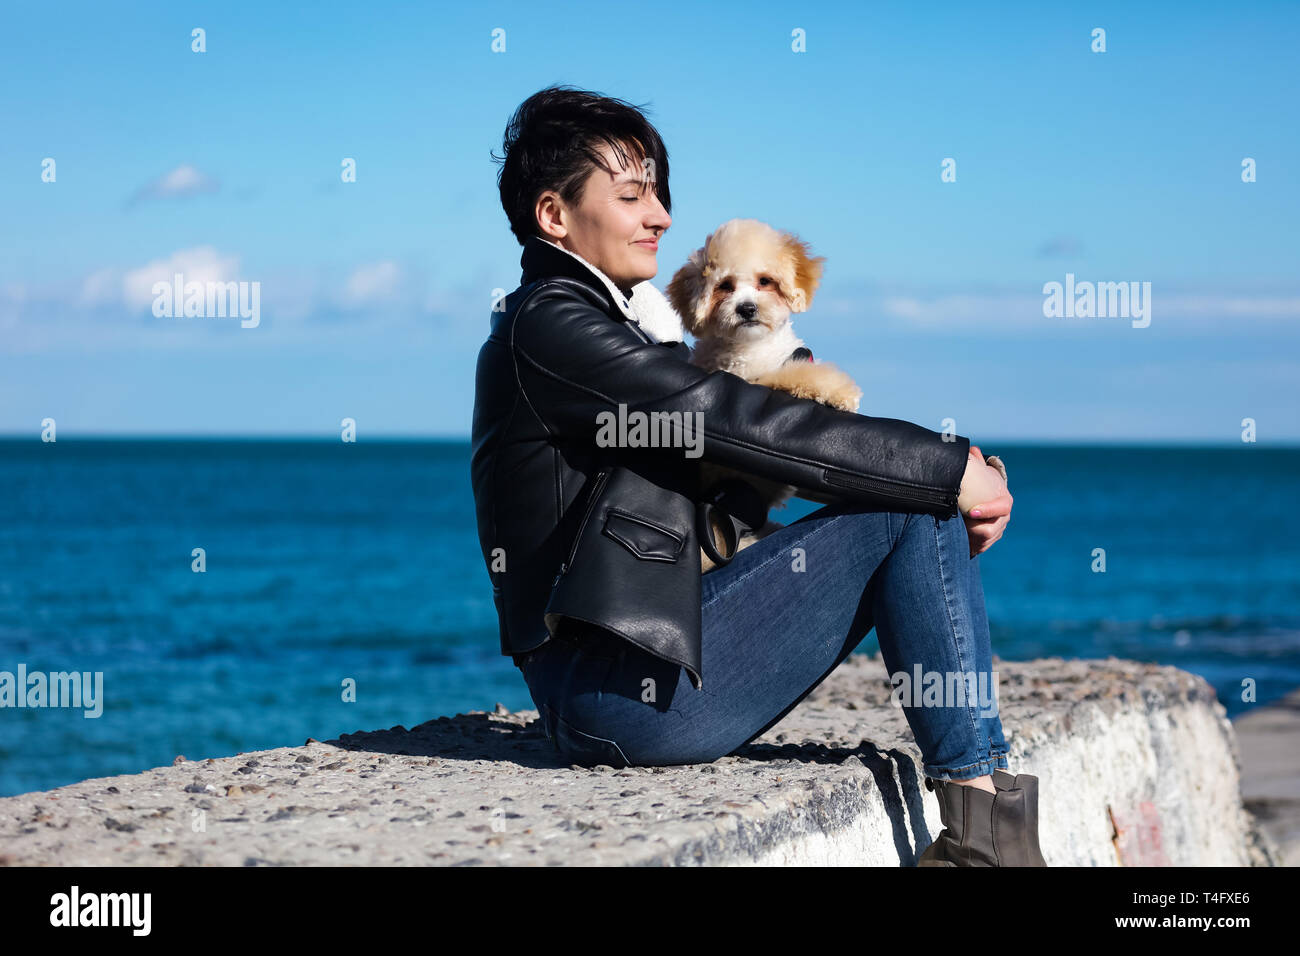 Calm and happy sunny day, woman sitting on the beach with her fluffy friend. Small puppy with curly fur and tiny black nose, love his owner and playin Stock Photo